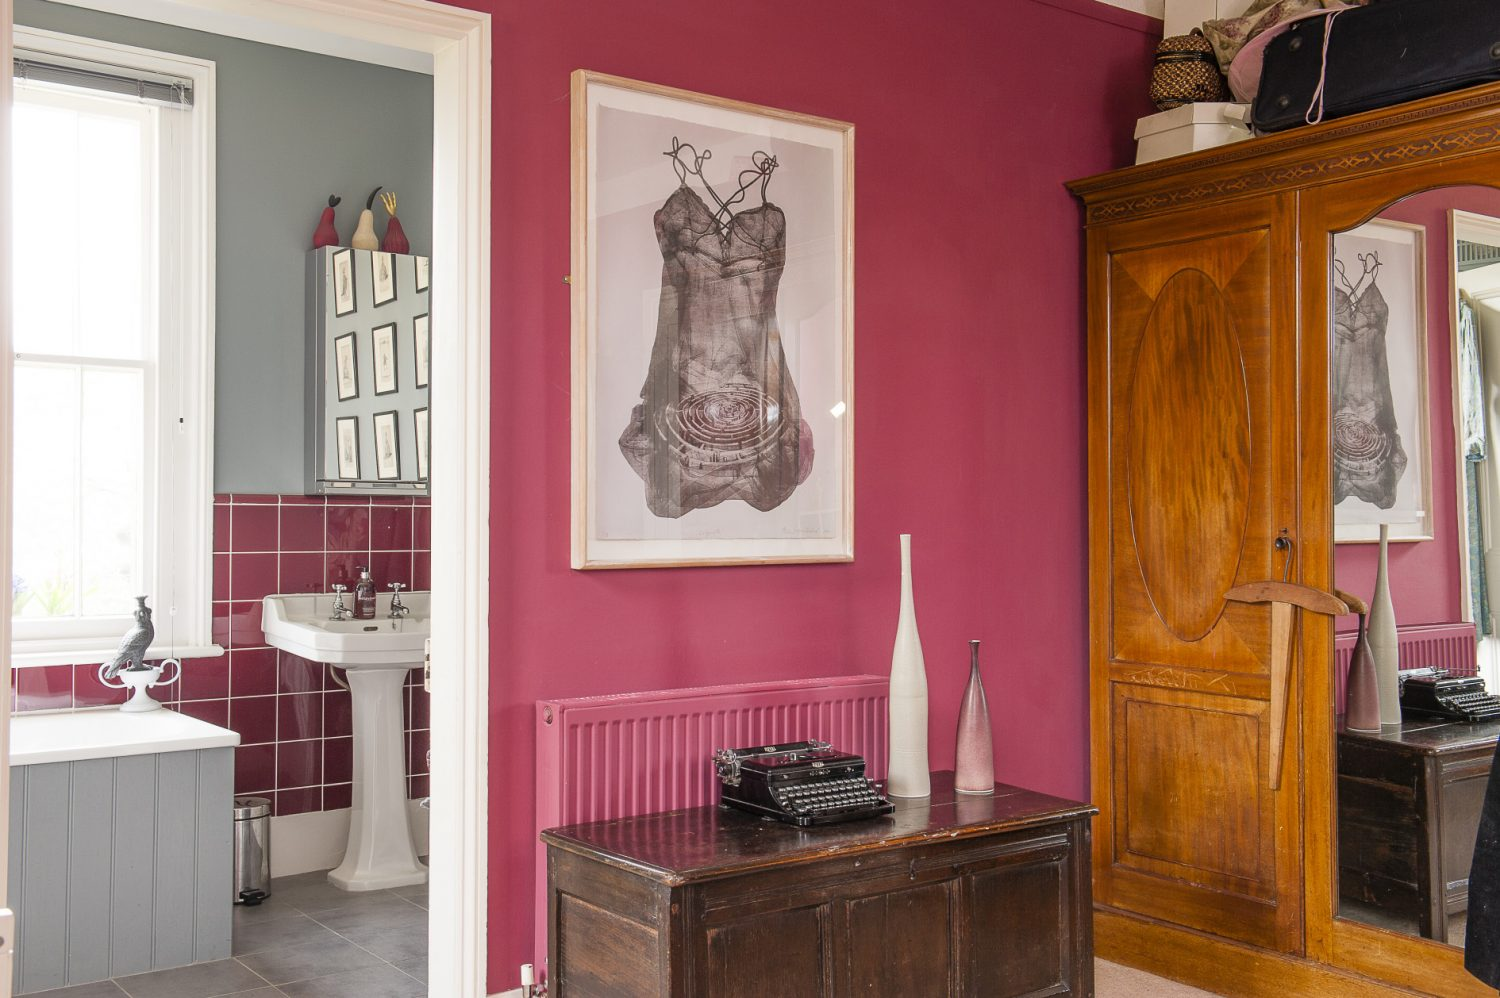 The spare bedroom is painted a juicy raspberry red, the bed covered with a boiled felt throw